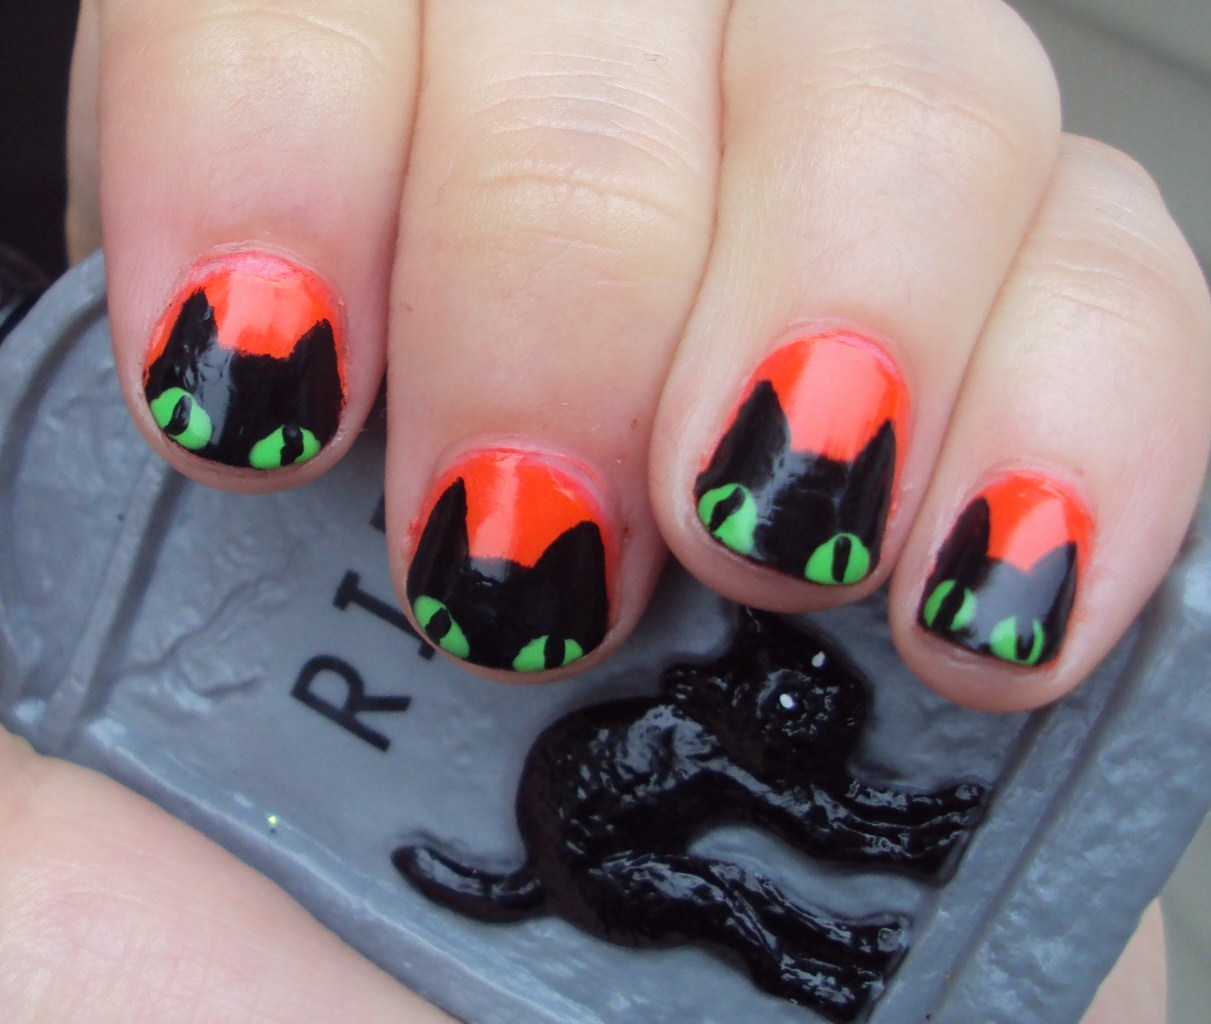 Glamonthecheap crumpets nail tarts halloween 2012 nail art crumpets nail tarts halloween 2012 nail art challenge day 2 black cats prinsesfo Image collections